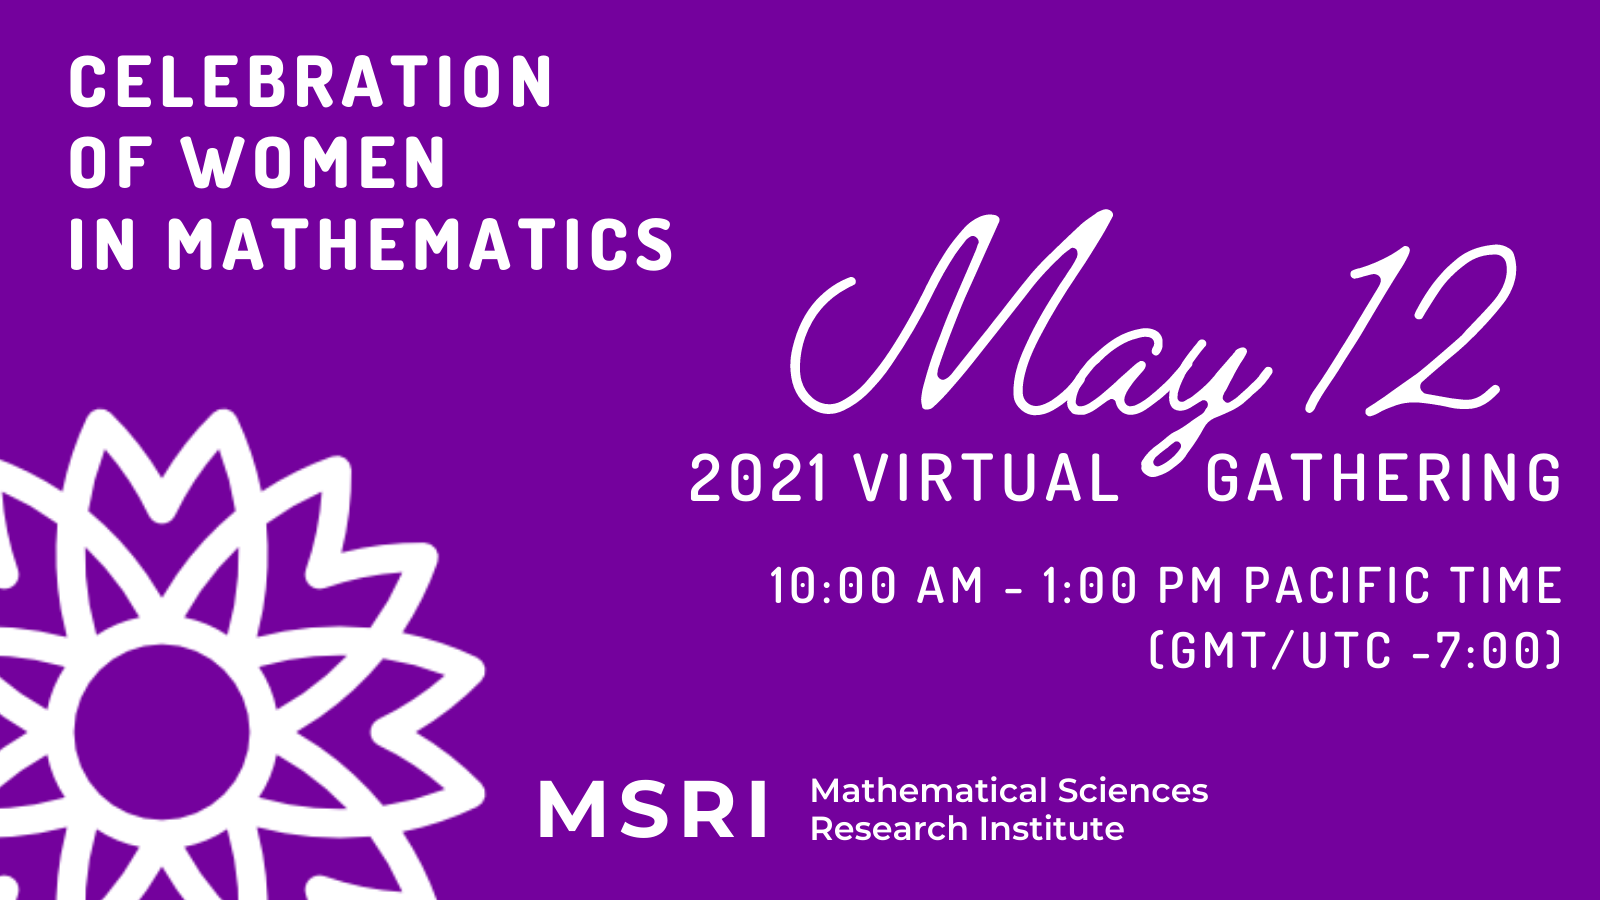 MSRI May 12 event promotional image